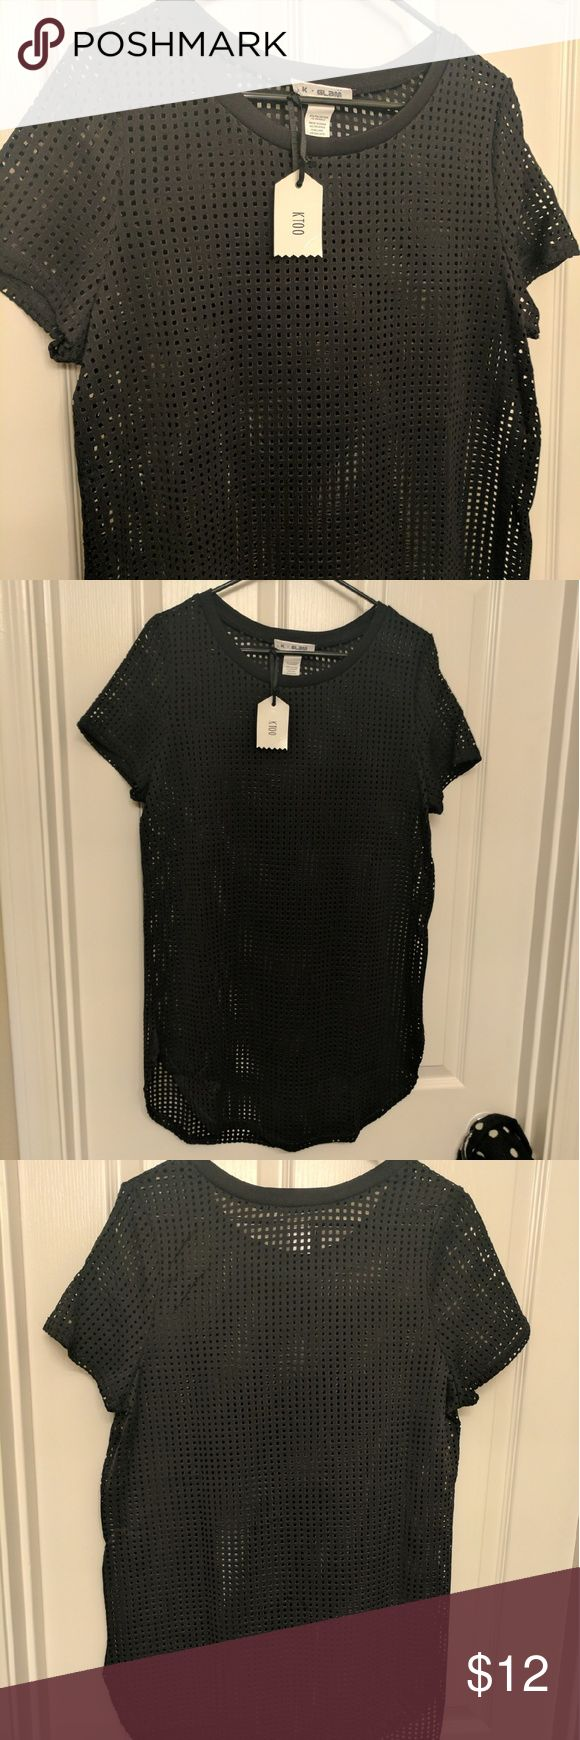 NWT Mesh Top Brand new with tags! Black mesh top.   ***I ship in 3 biz days or less*** Tops